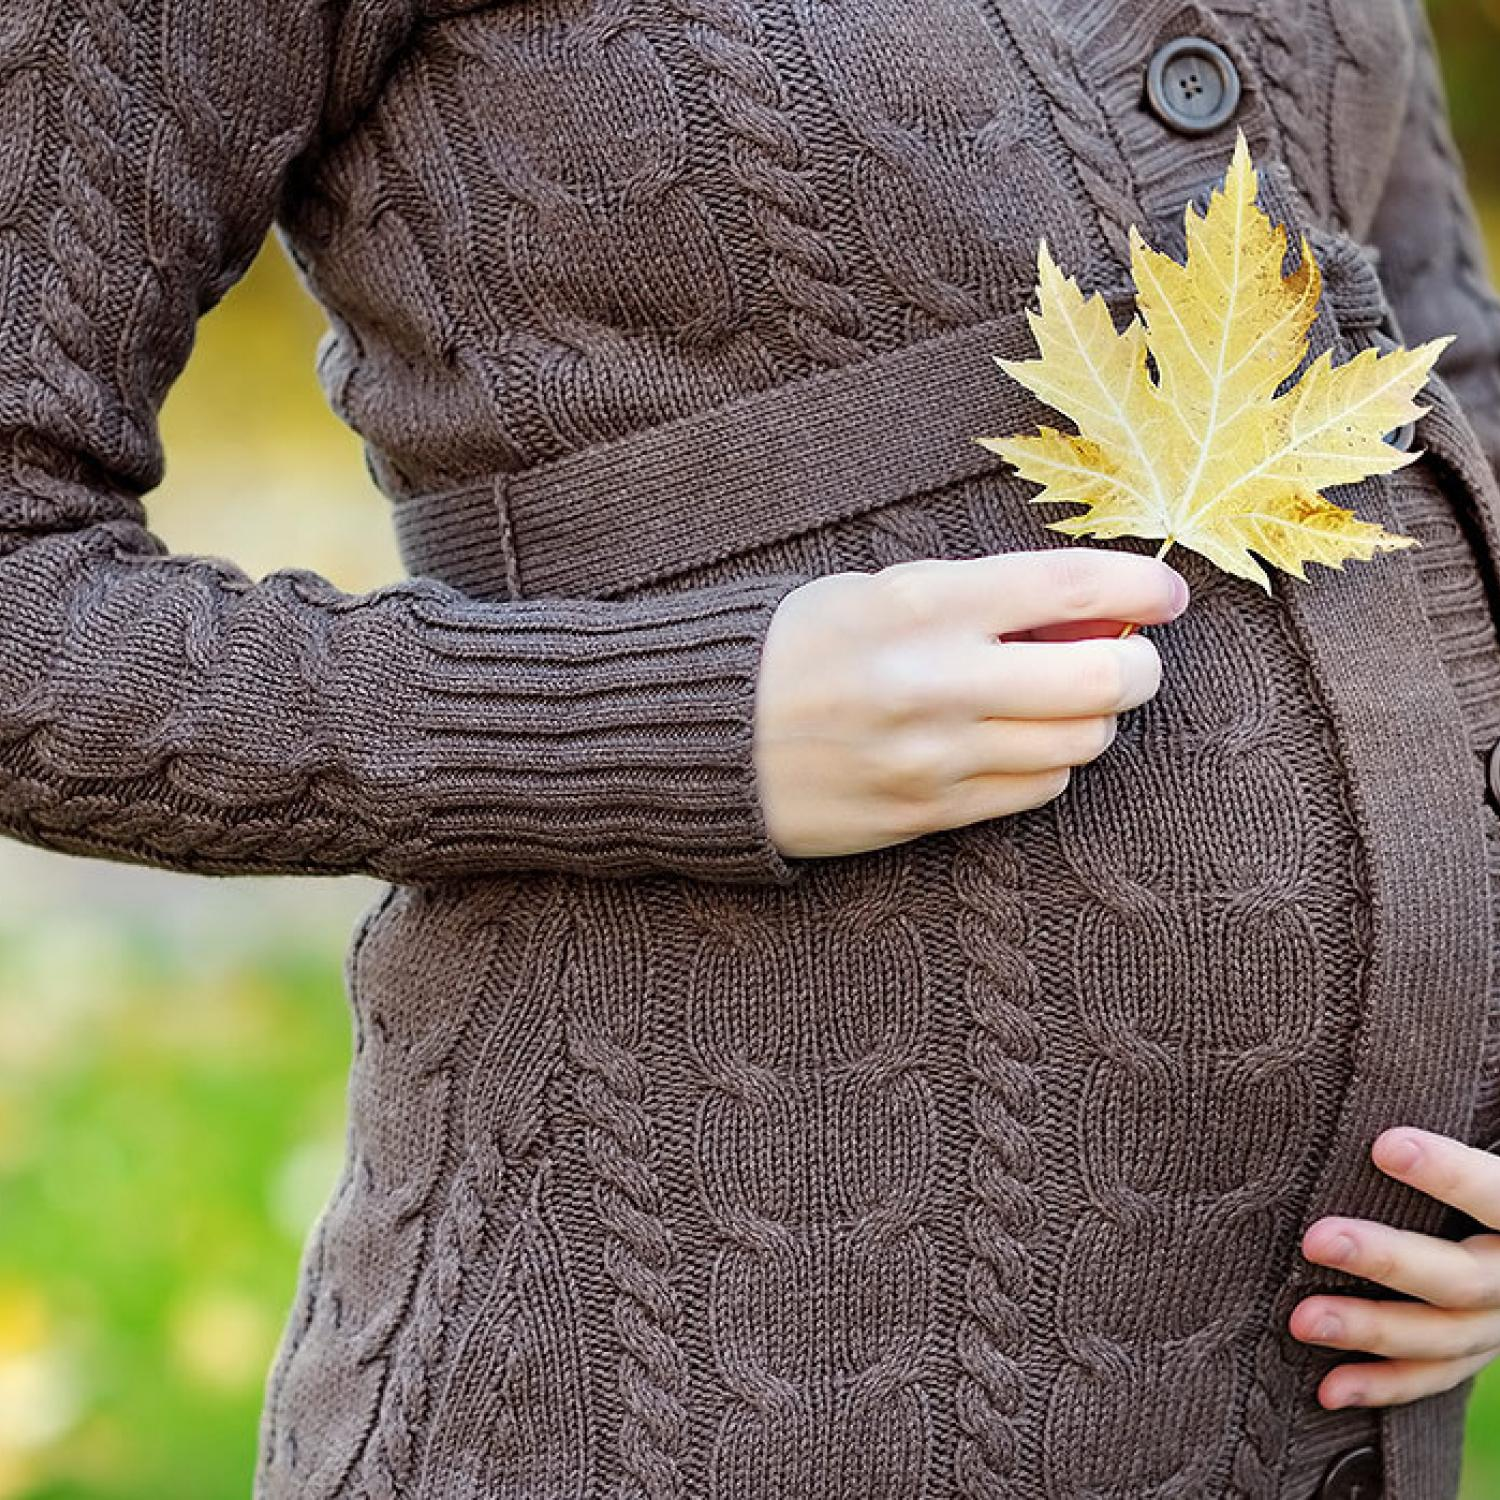 Harvest these fun fall baby shower ideas parenting